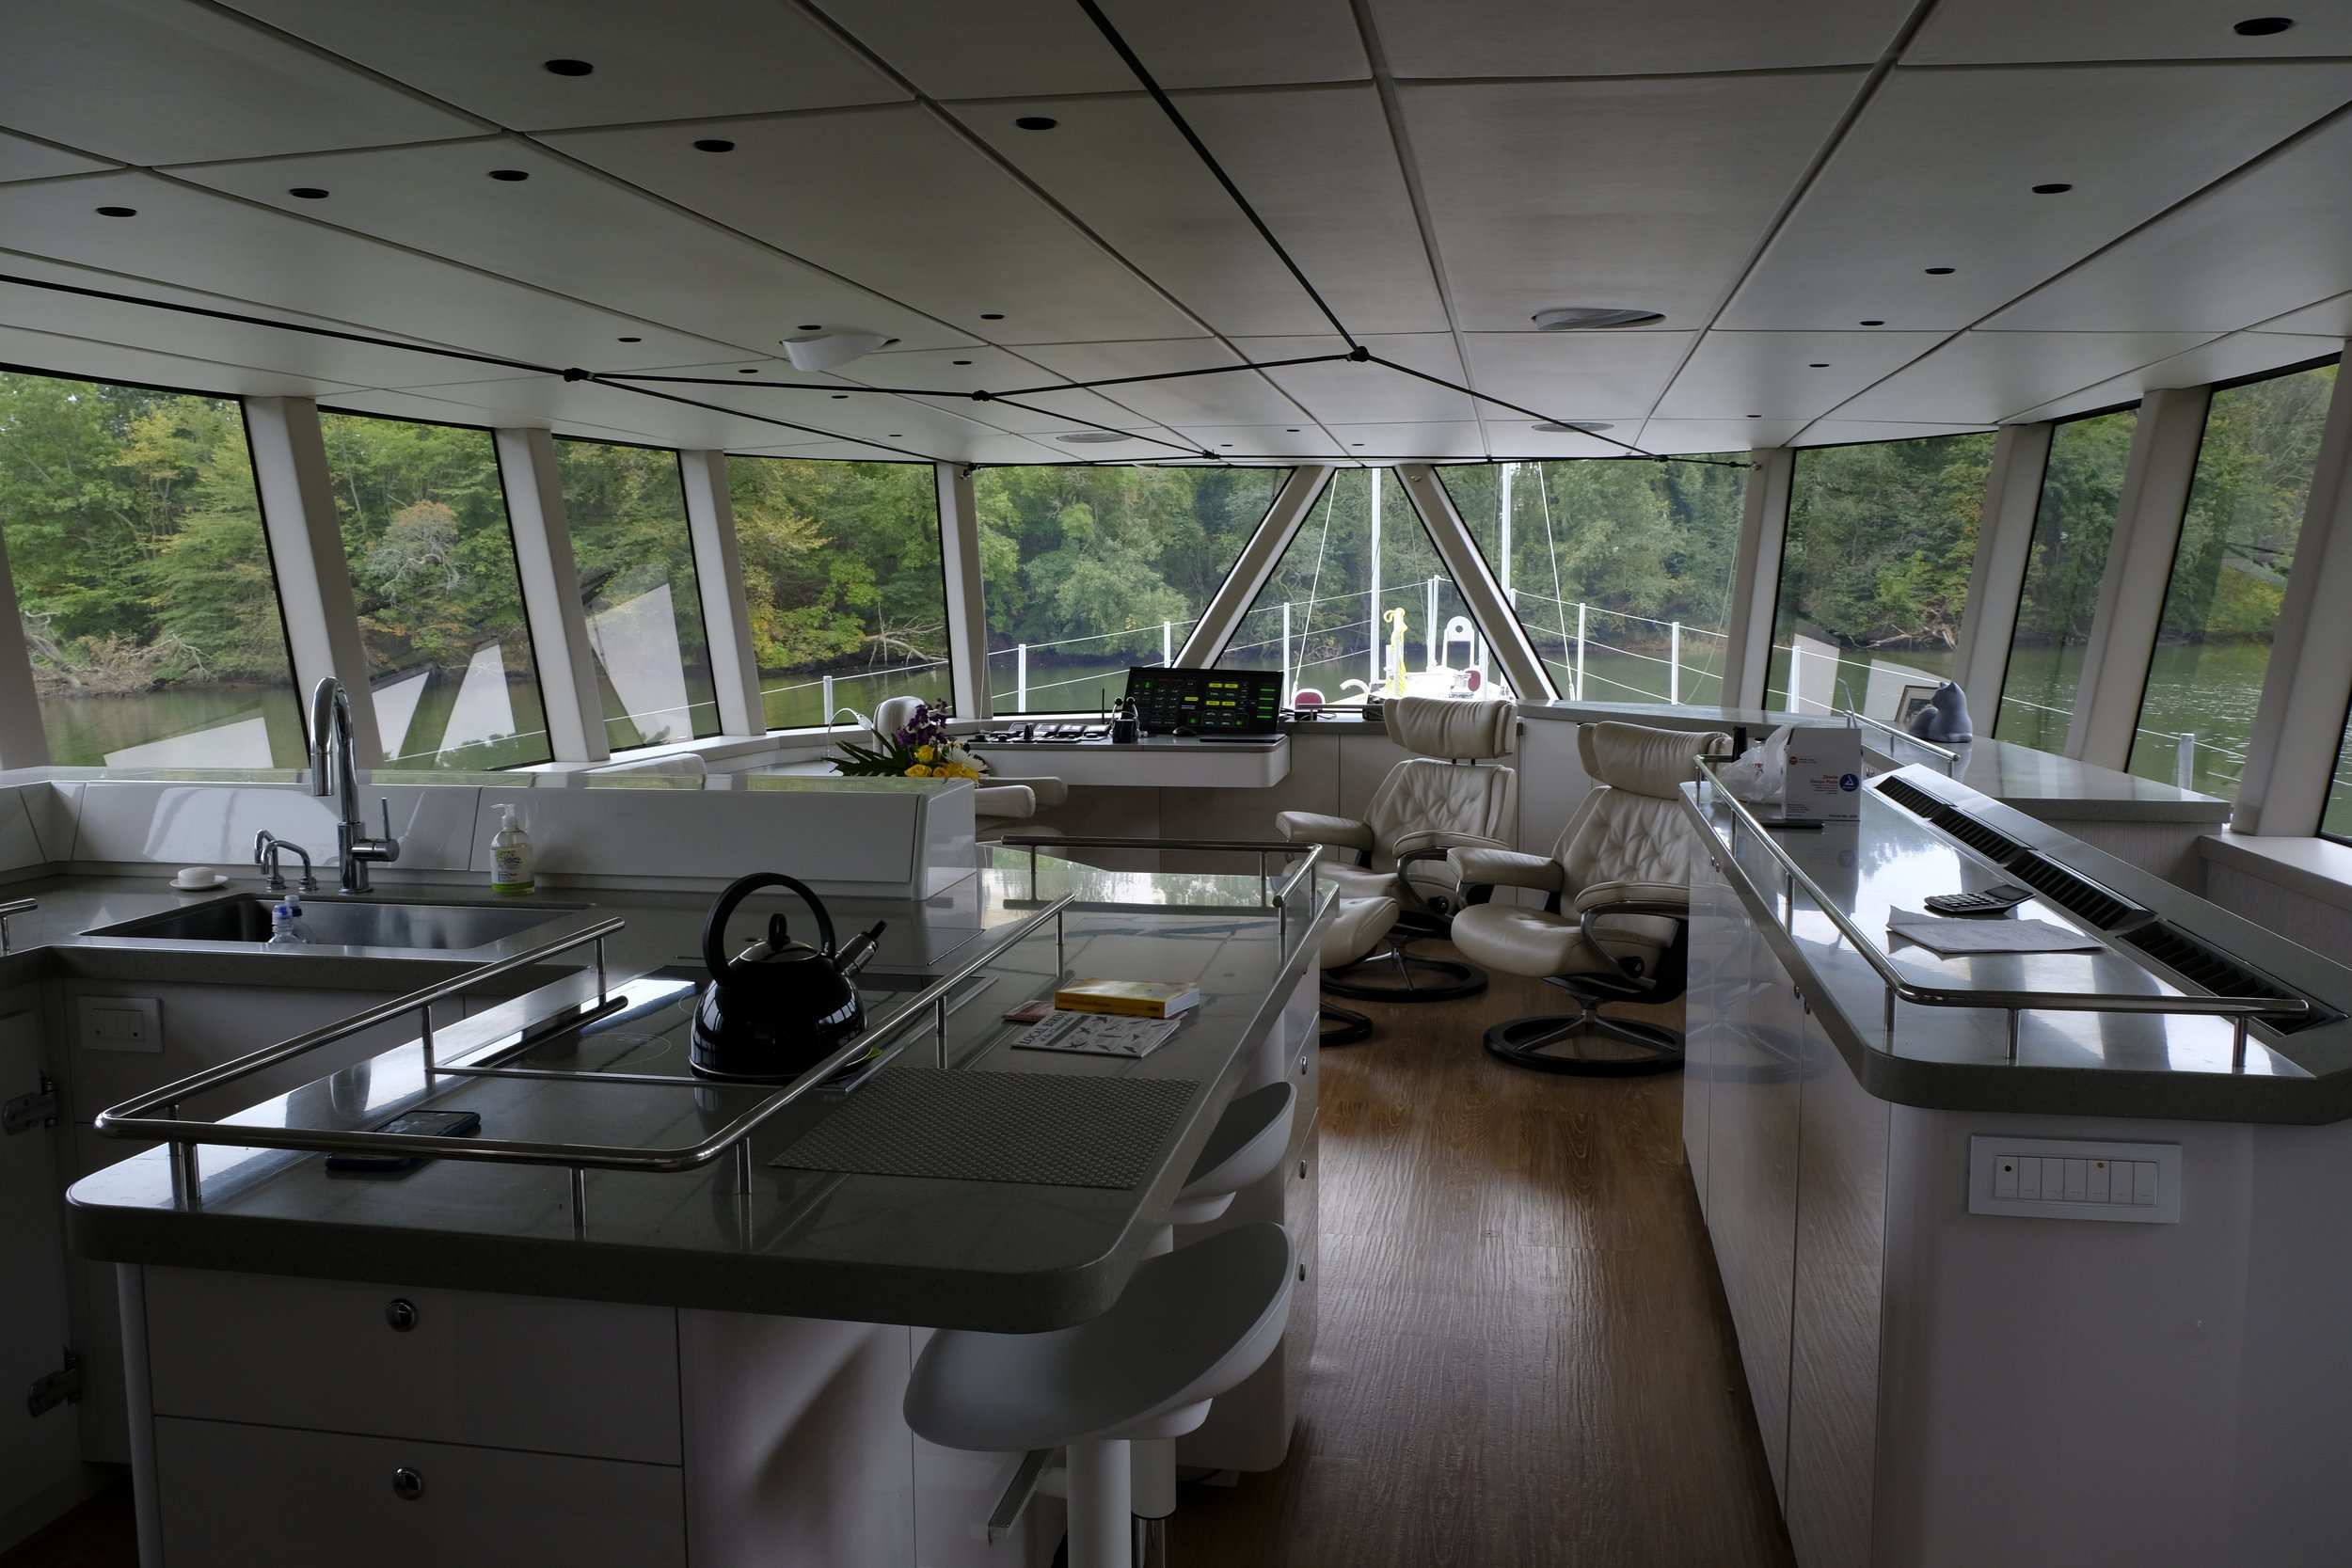 The gray saloon is minimalist and sophisticated. Everything is stored out of sight, yet readily accessible. Note the overhead spiderweb of Spectra line for holding on at sea. Motion is minimal at the center of this boat.